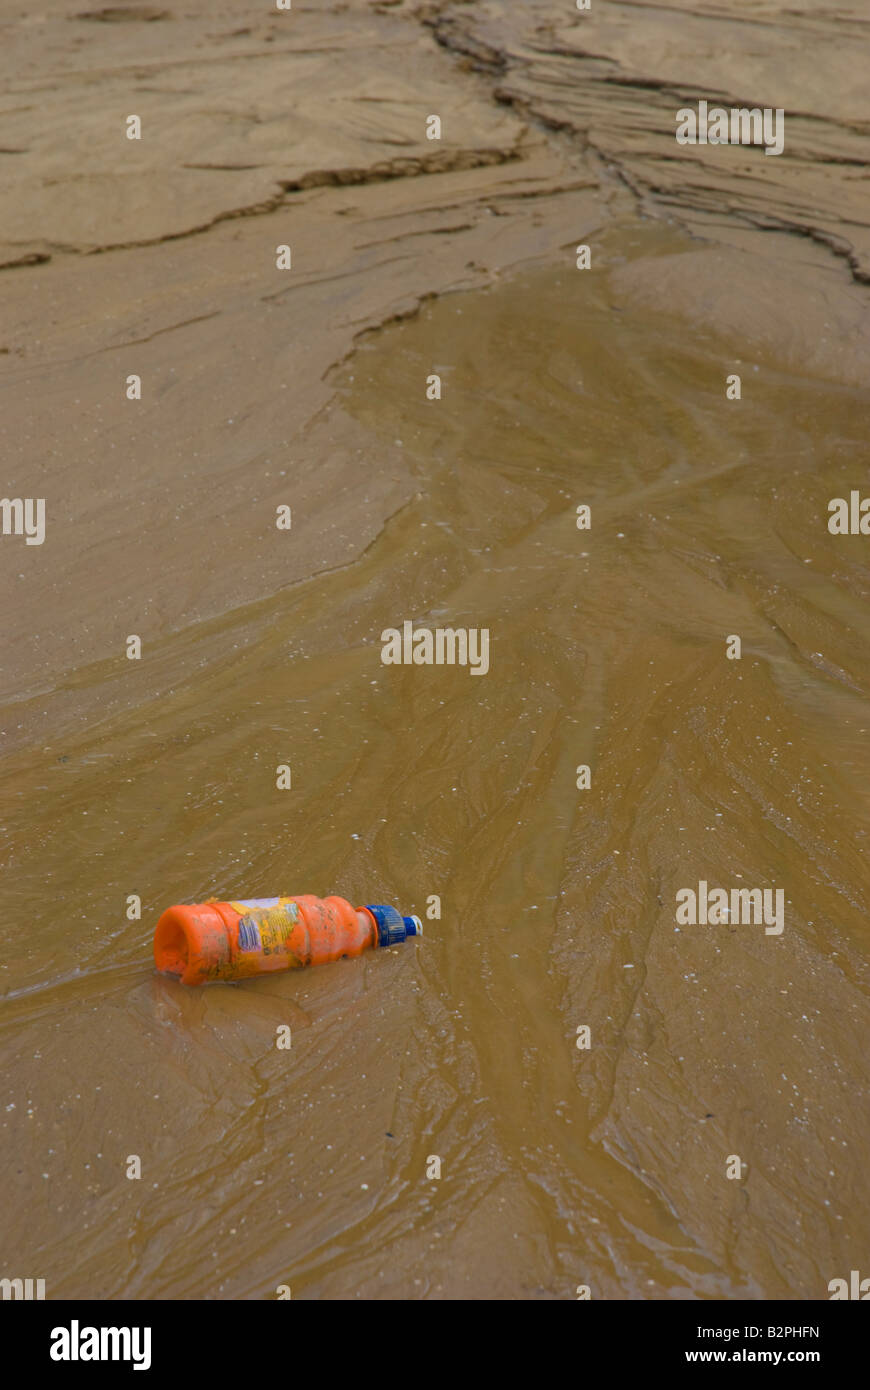 Washed up bottle on beach - Stock Image